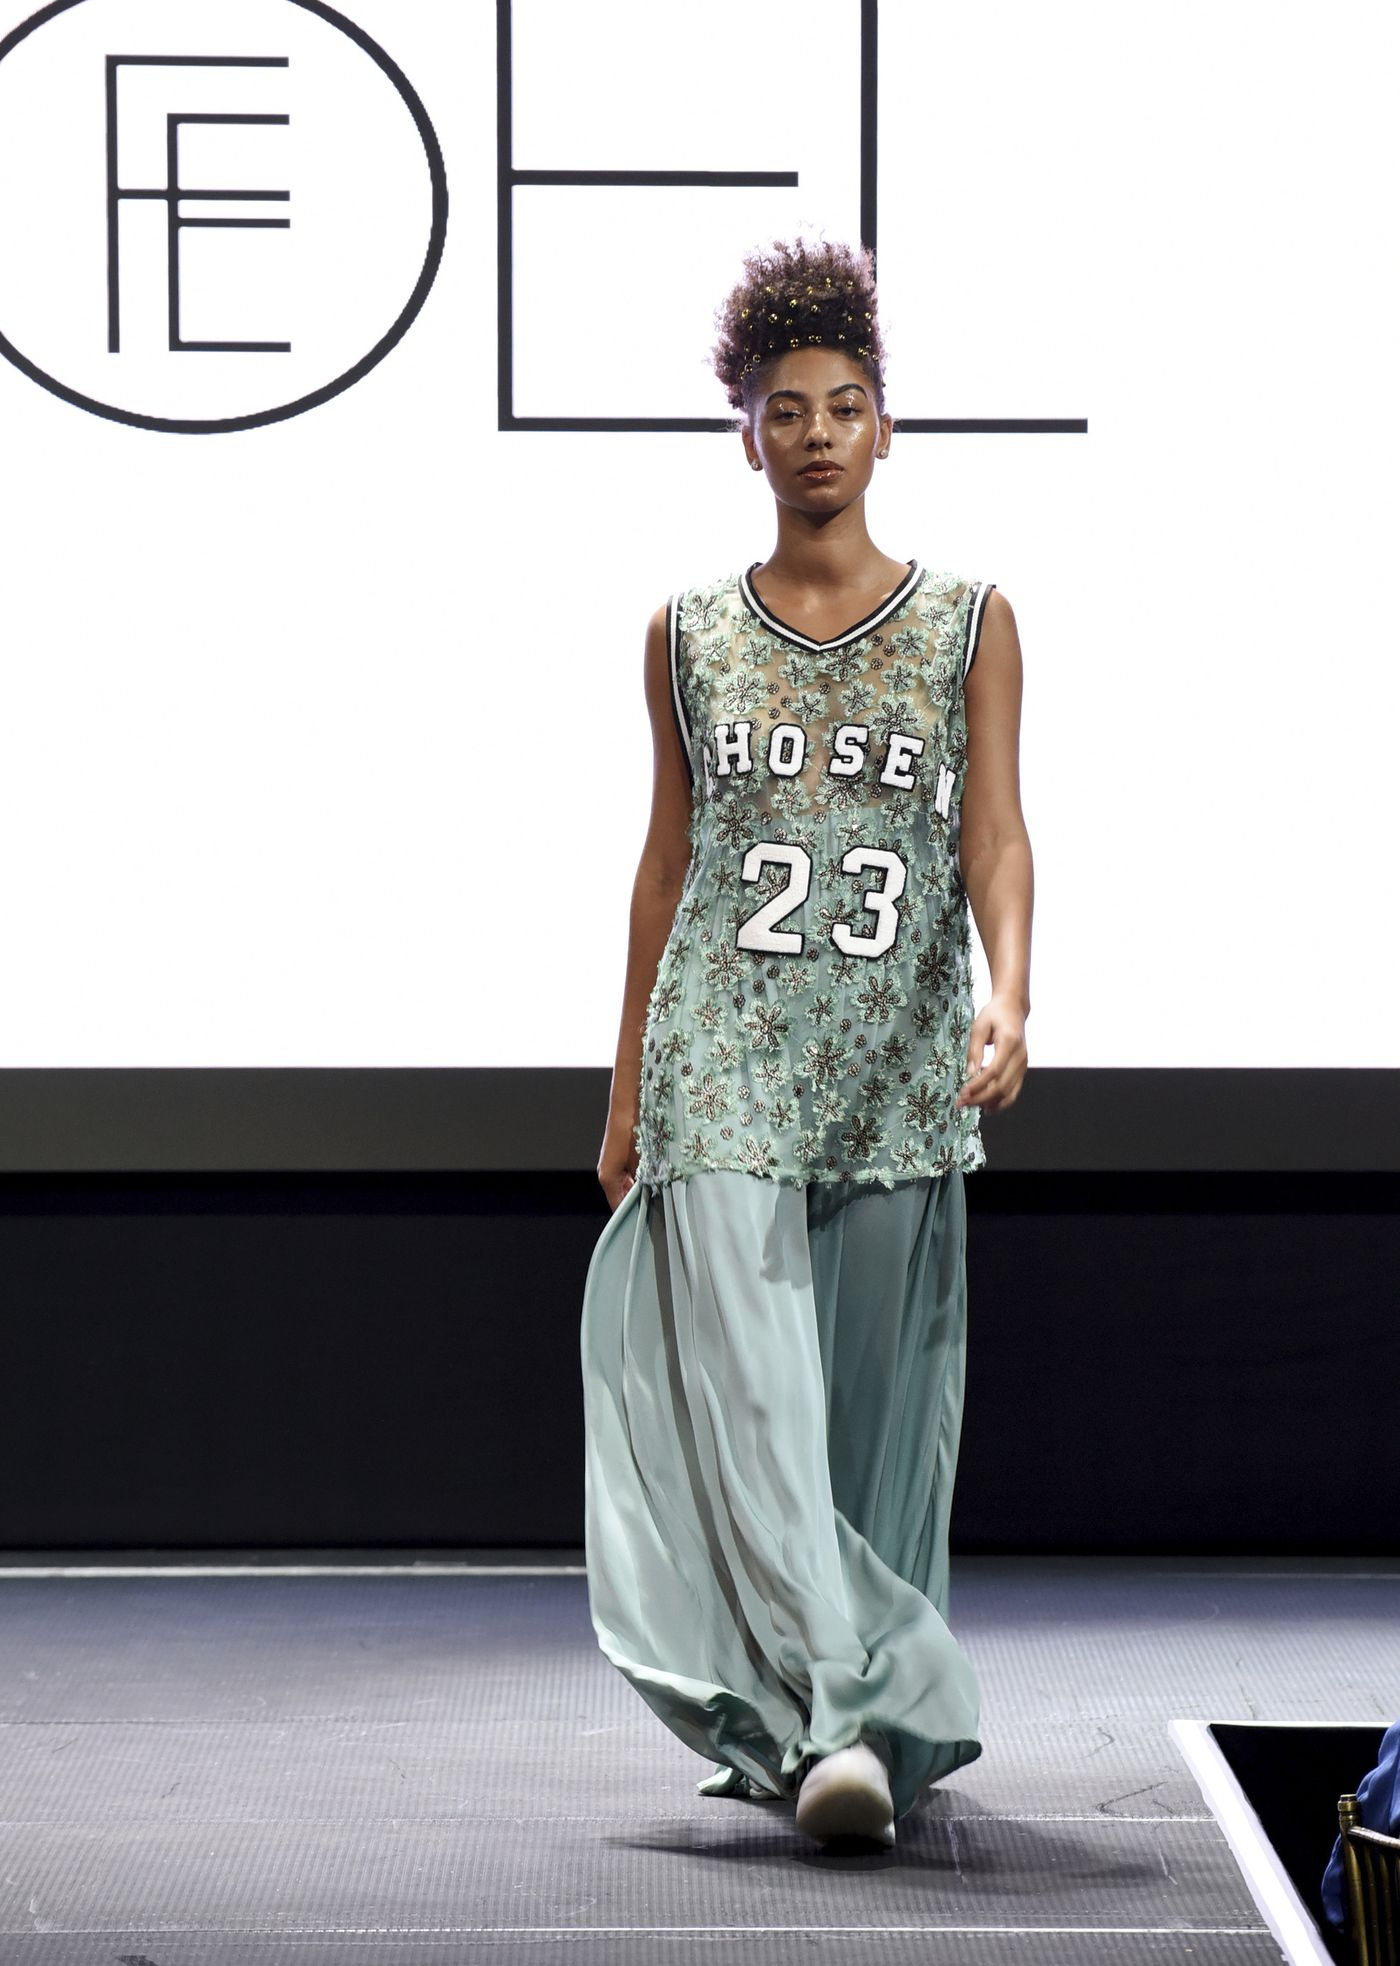 fe327d6b8f8 The Fe Noel collection is modeled at the Harlem Fashion Row show and awards  ceremony before